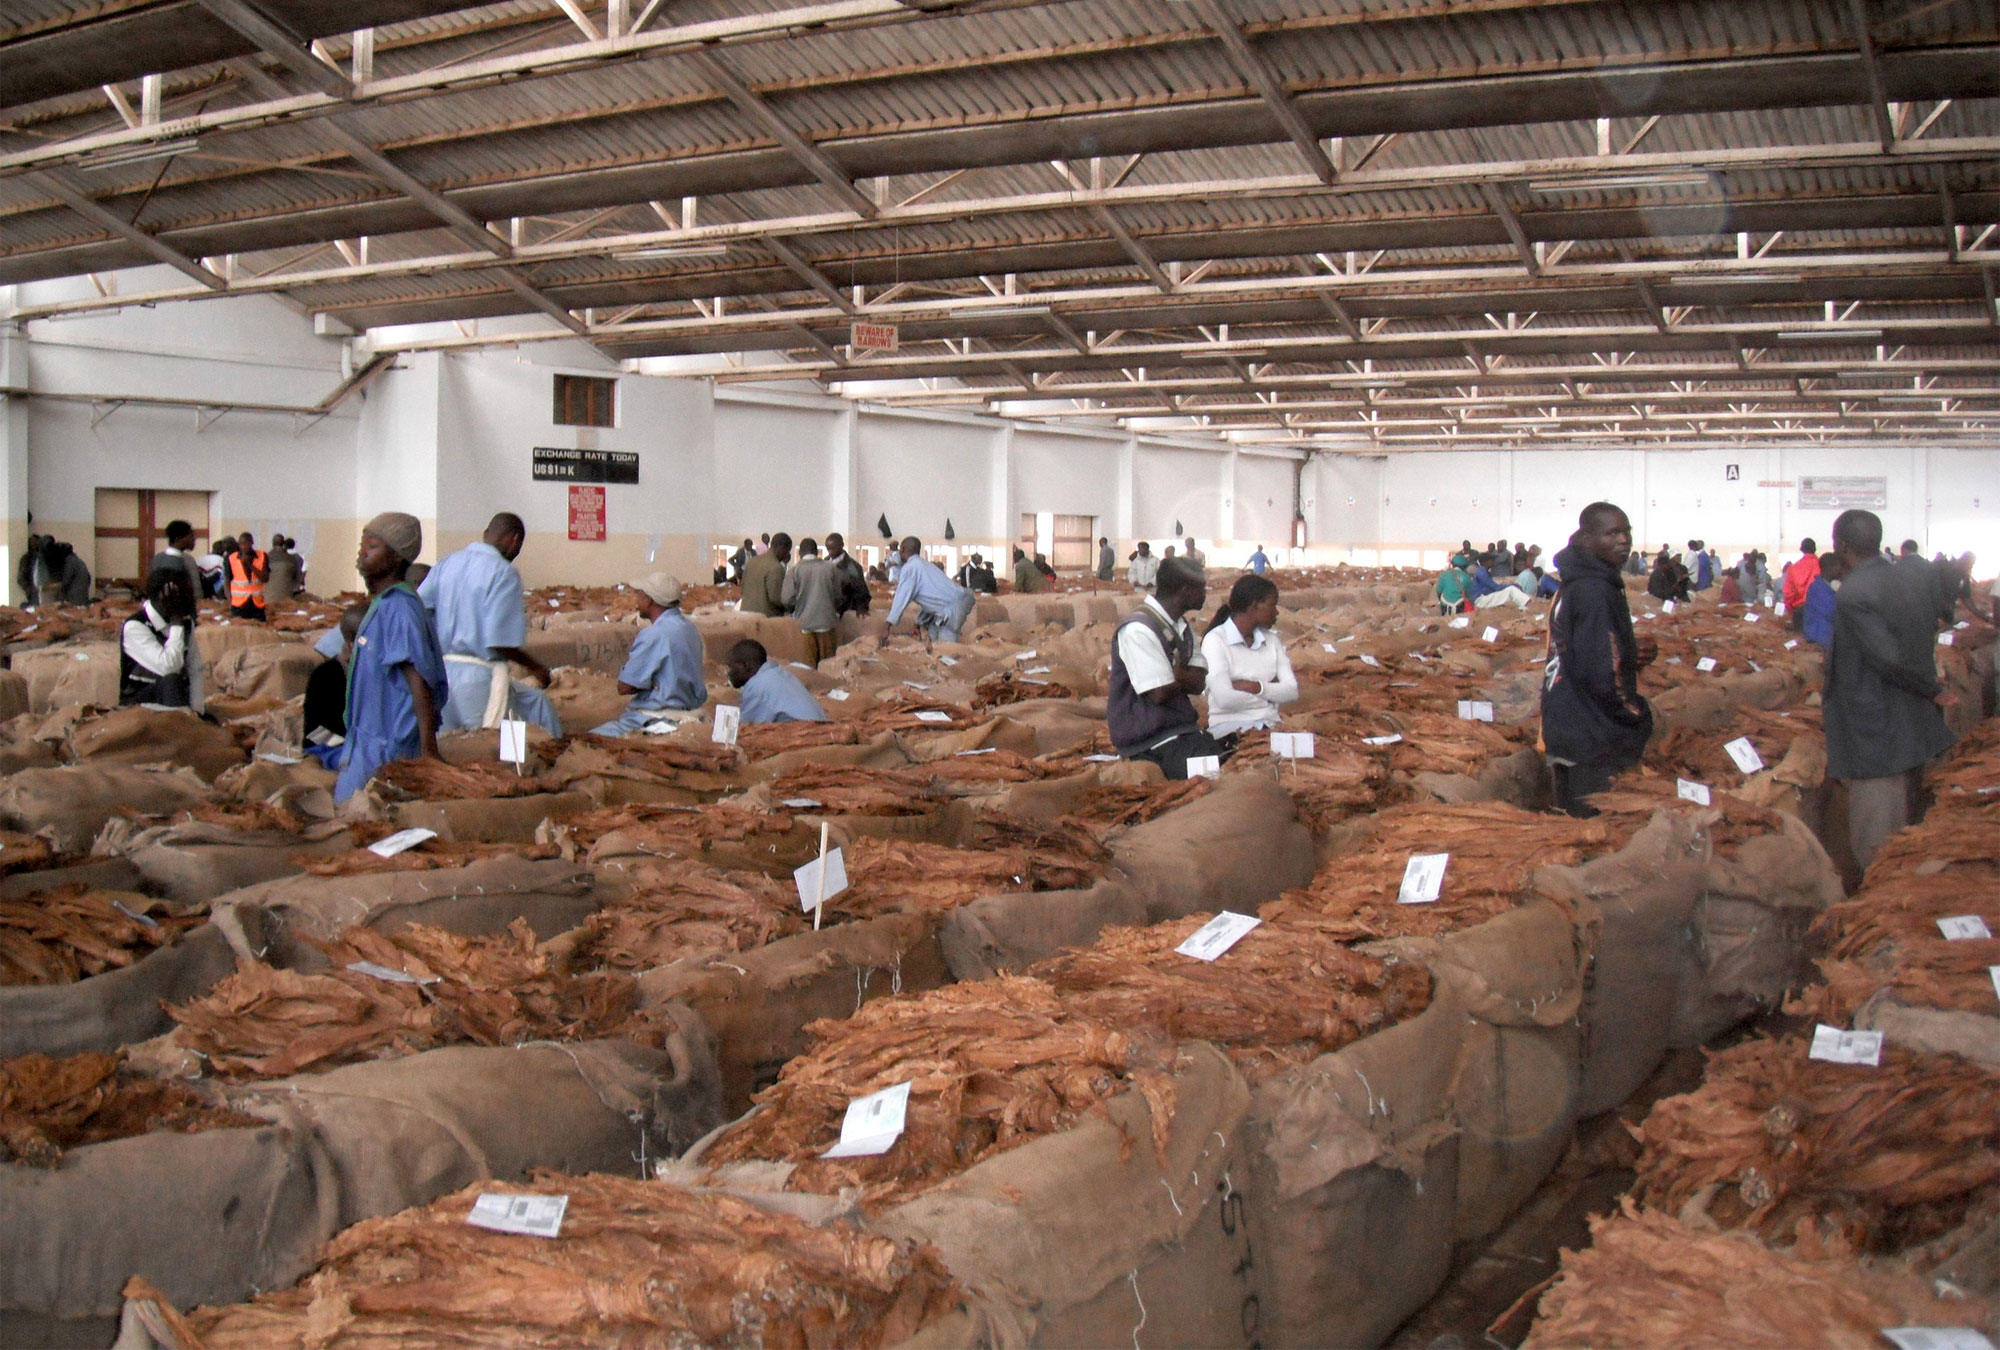 warehouse full of sacks of brown tobacco leaves